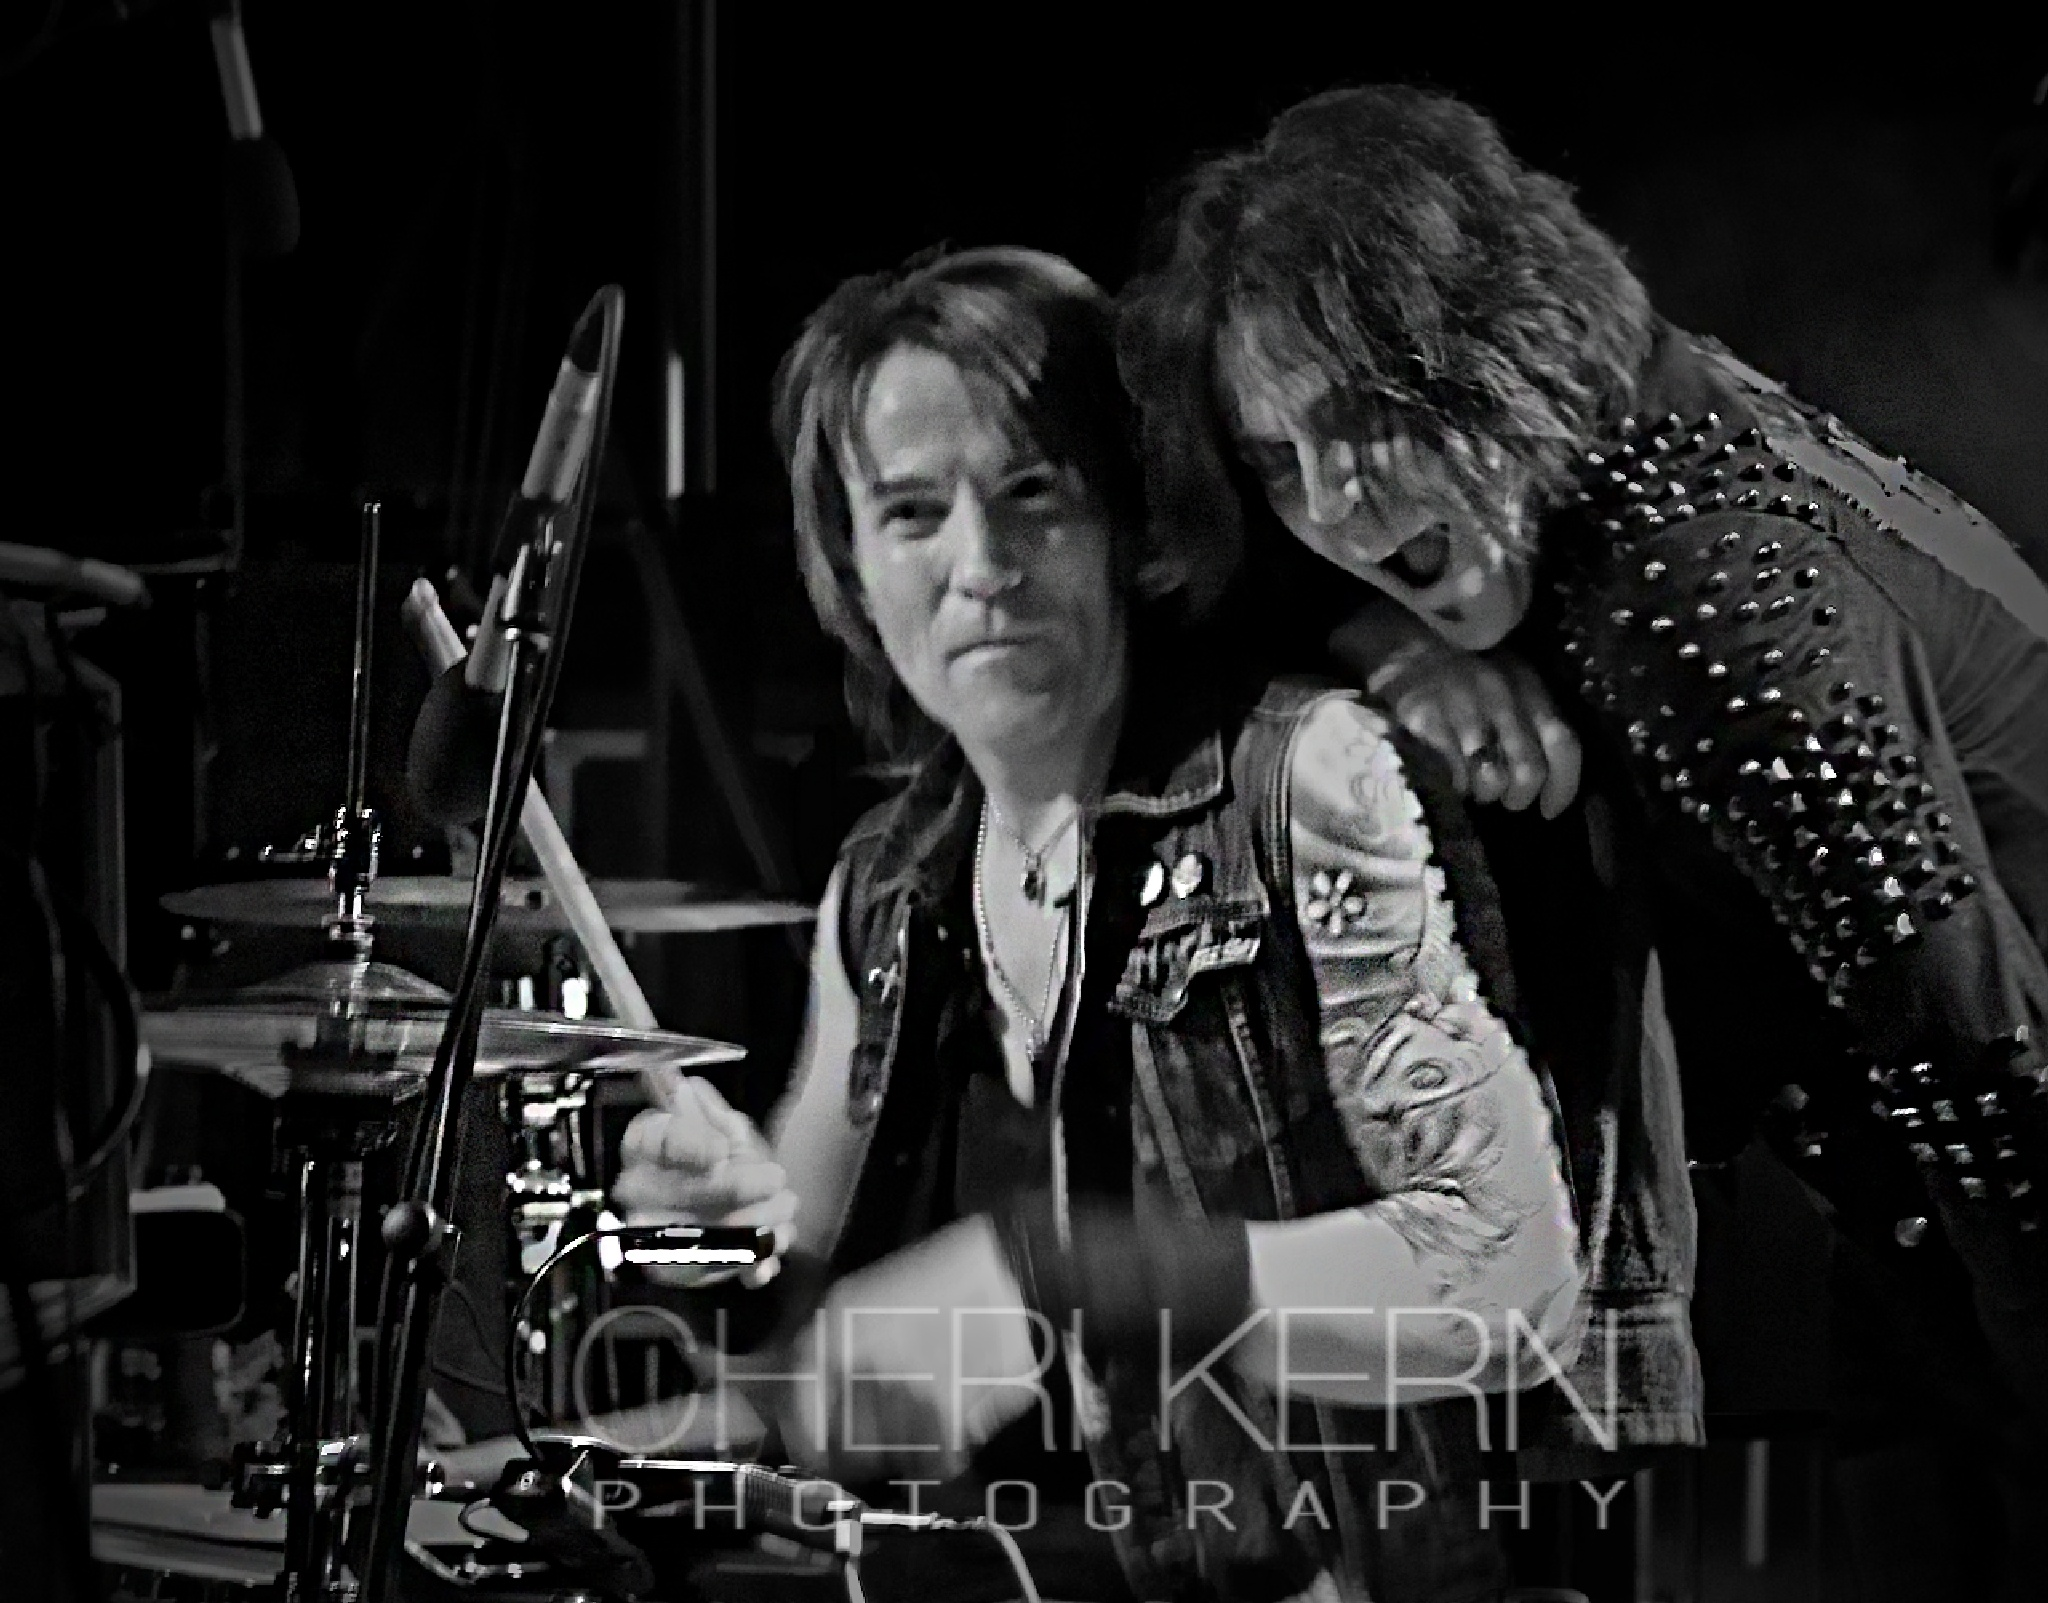 SKID ROW - From the Stage - June 2015 by Cheri Kern Photography